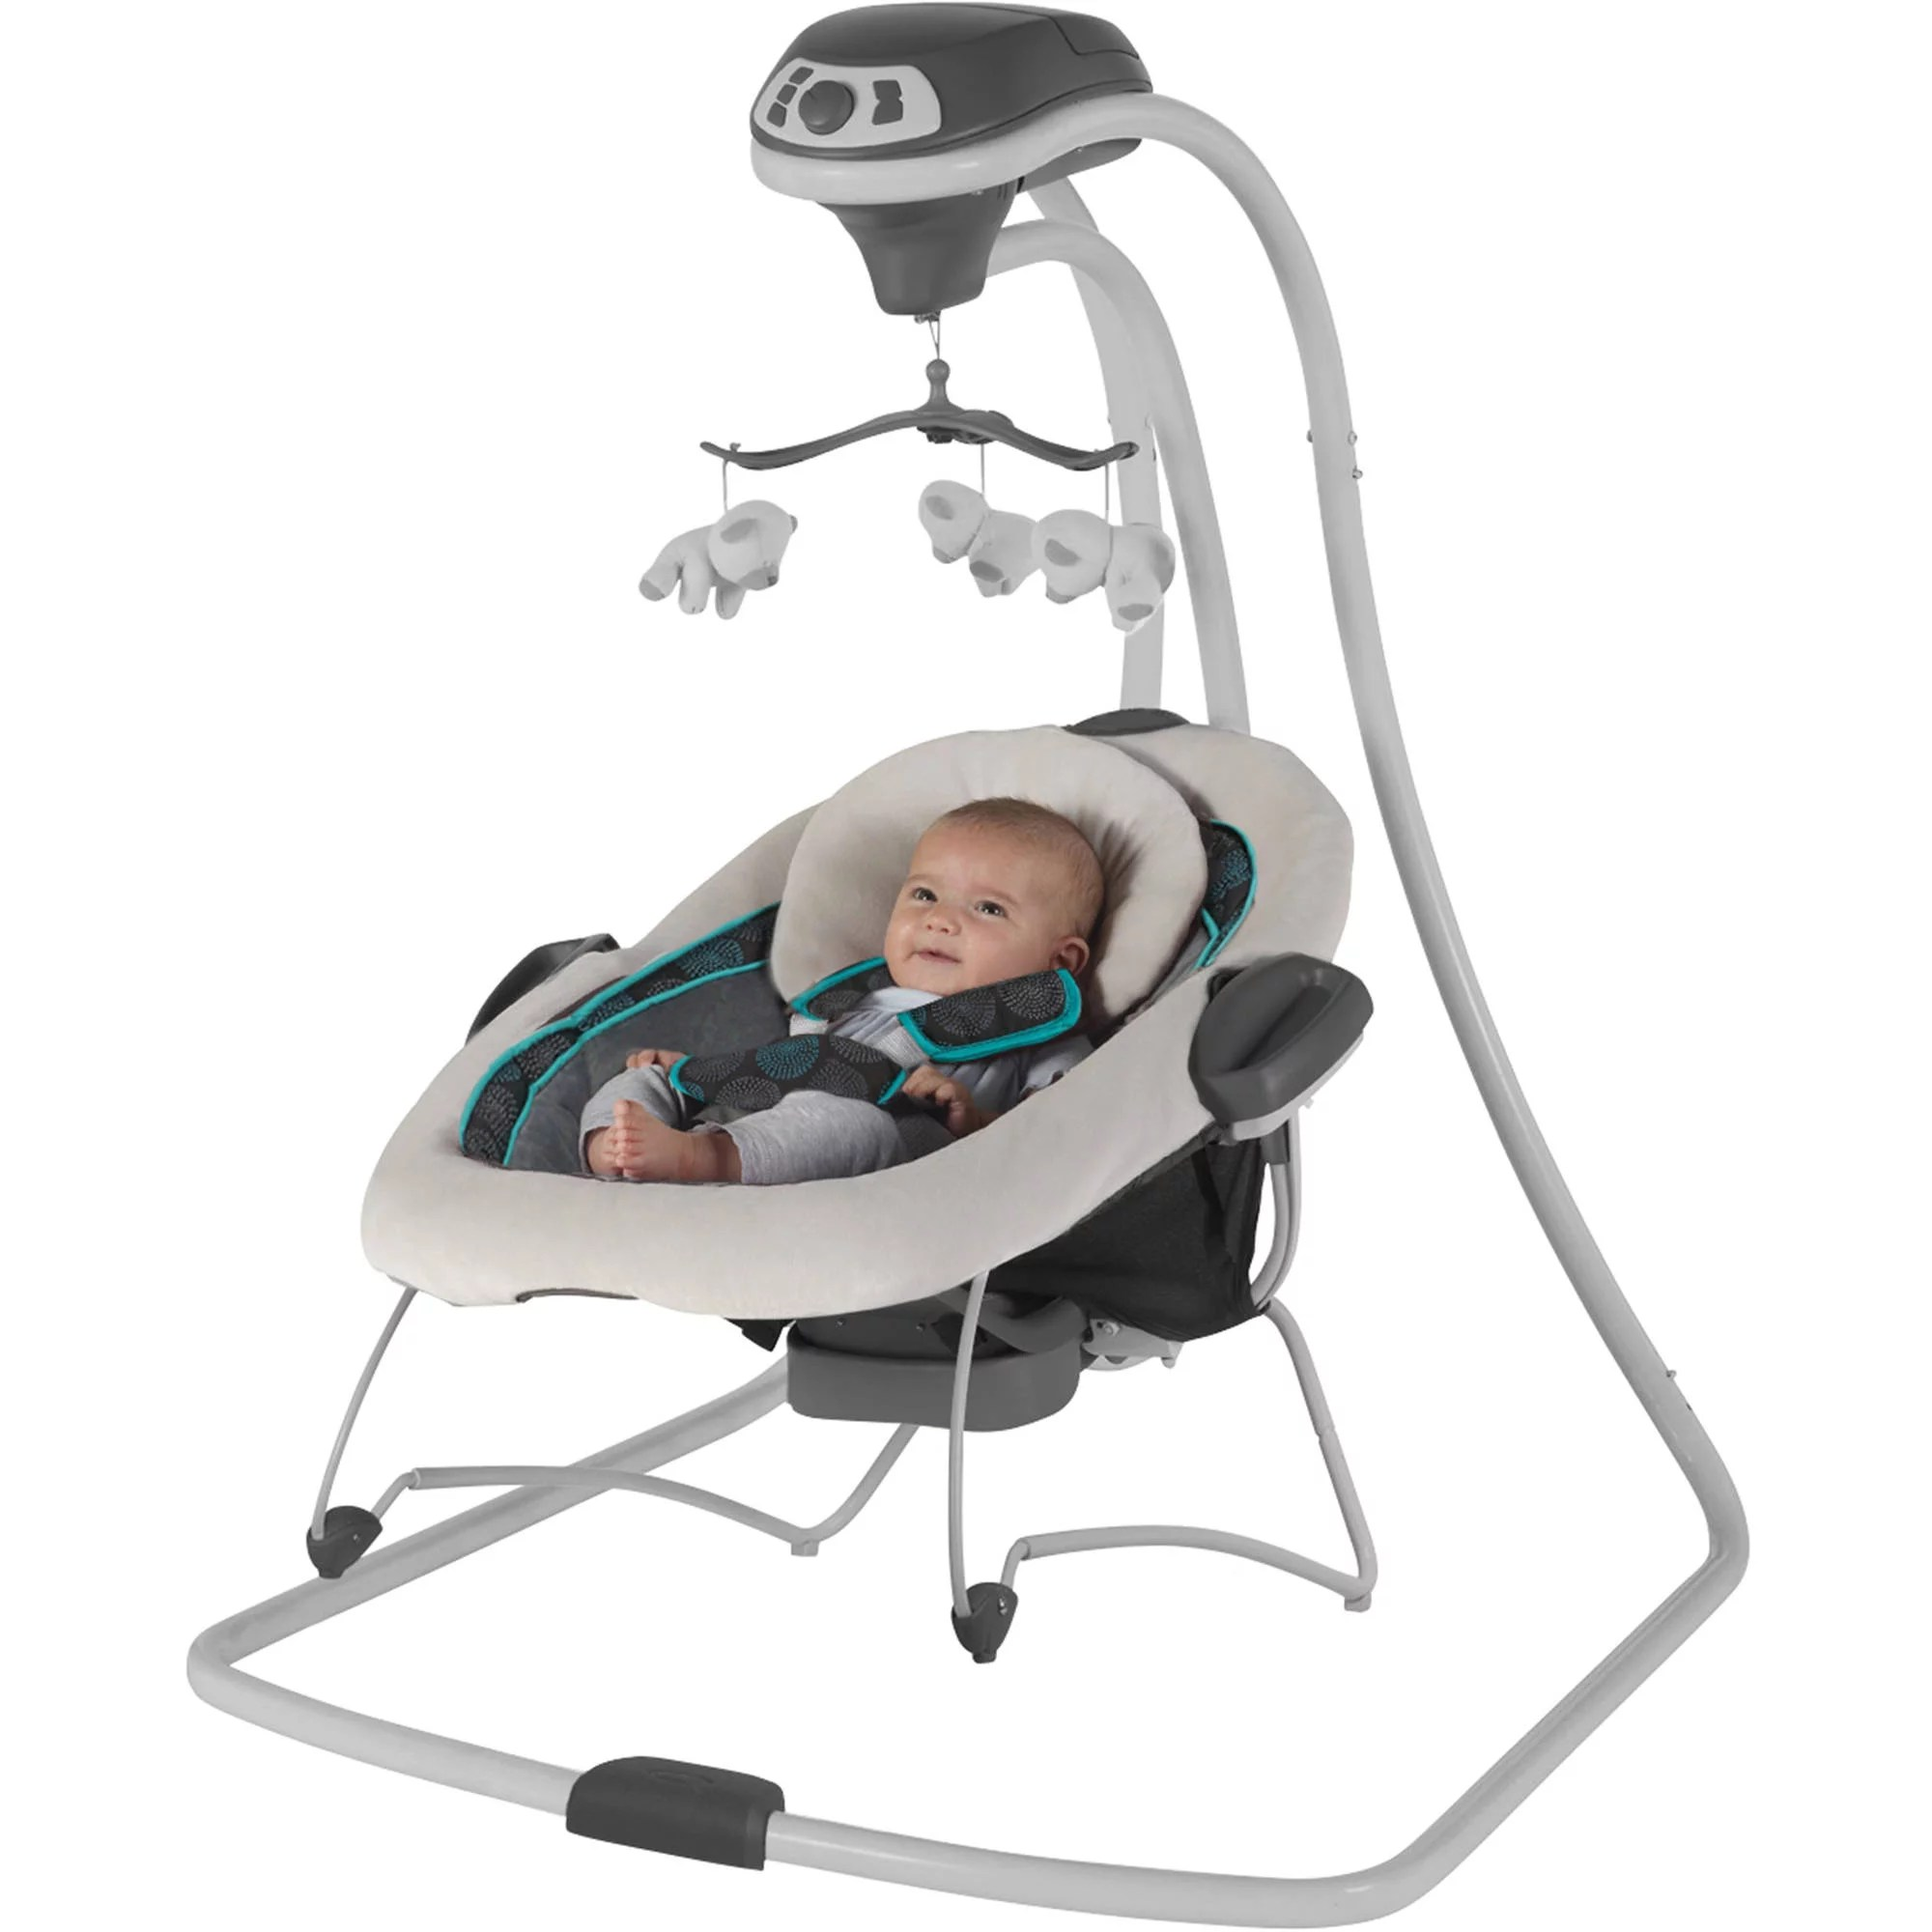 Baby Sleep In Bouncer Or Swing Graco Duetconnect Baby Swing And Bouncer Bristol